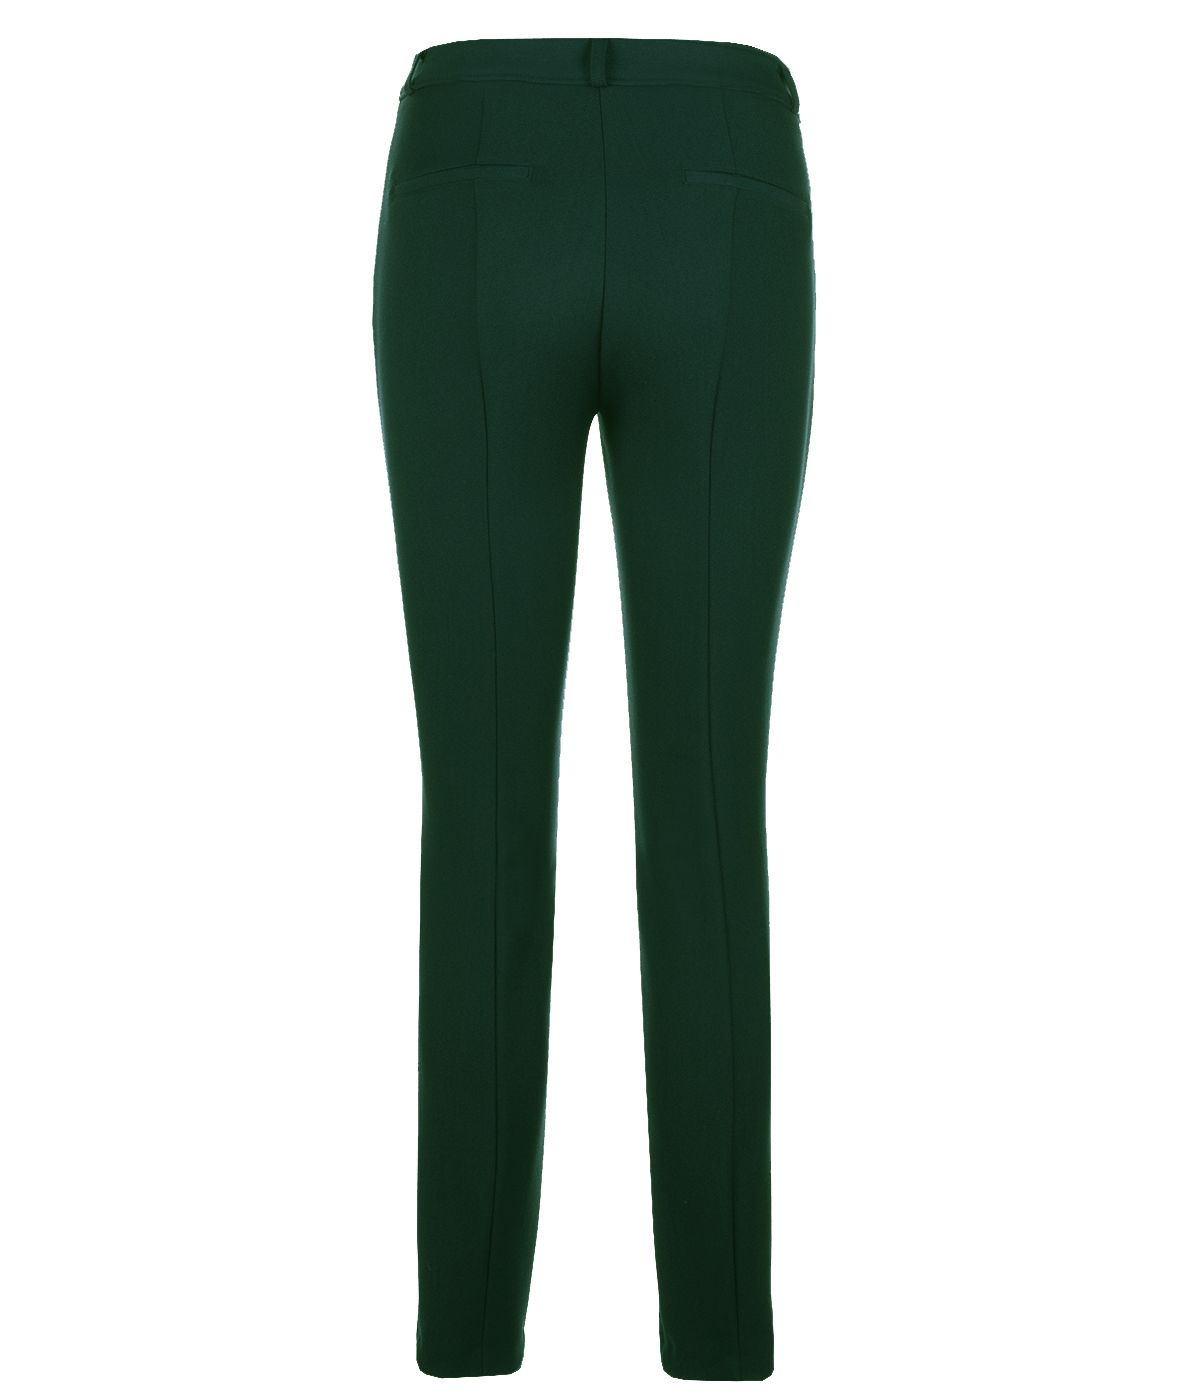 DARK GREEN SLIM FIT TROUSERS 1